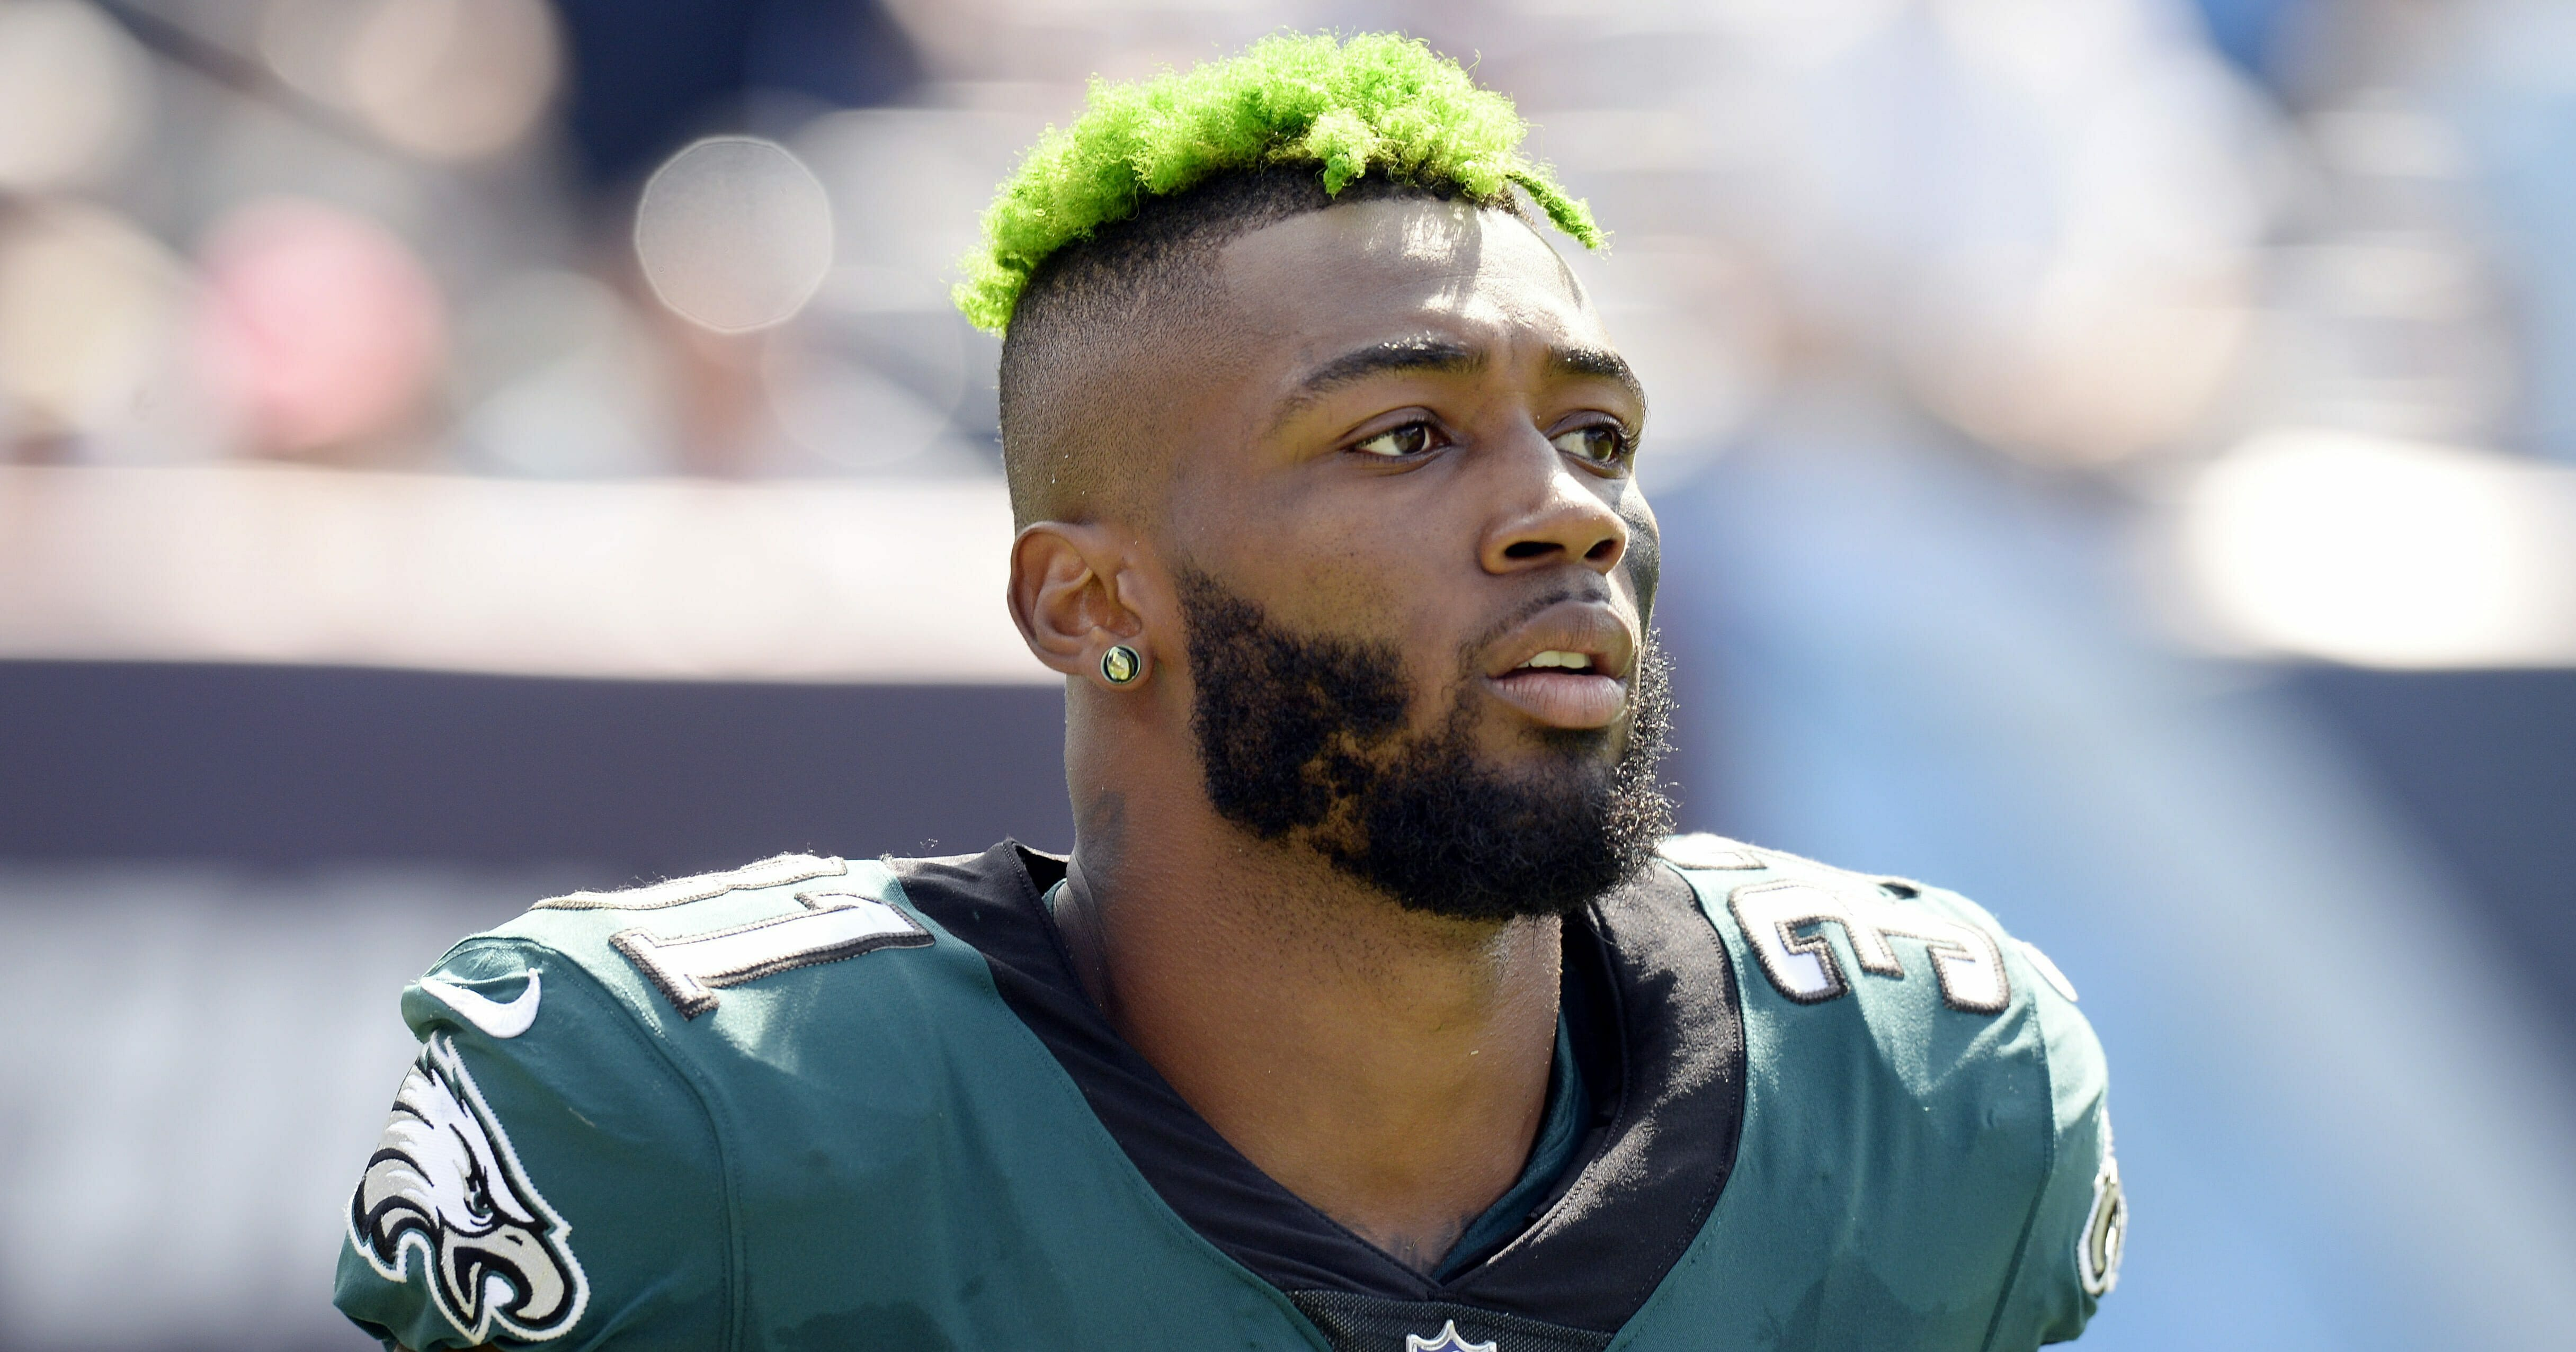 In this Sept. 30, 2018, file photo, Philadelphia Eagles defensive back Jalen Mills walks on the sideline during the second half of an NFL football game against the Tennessee Titans in Nashville, Tenn.